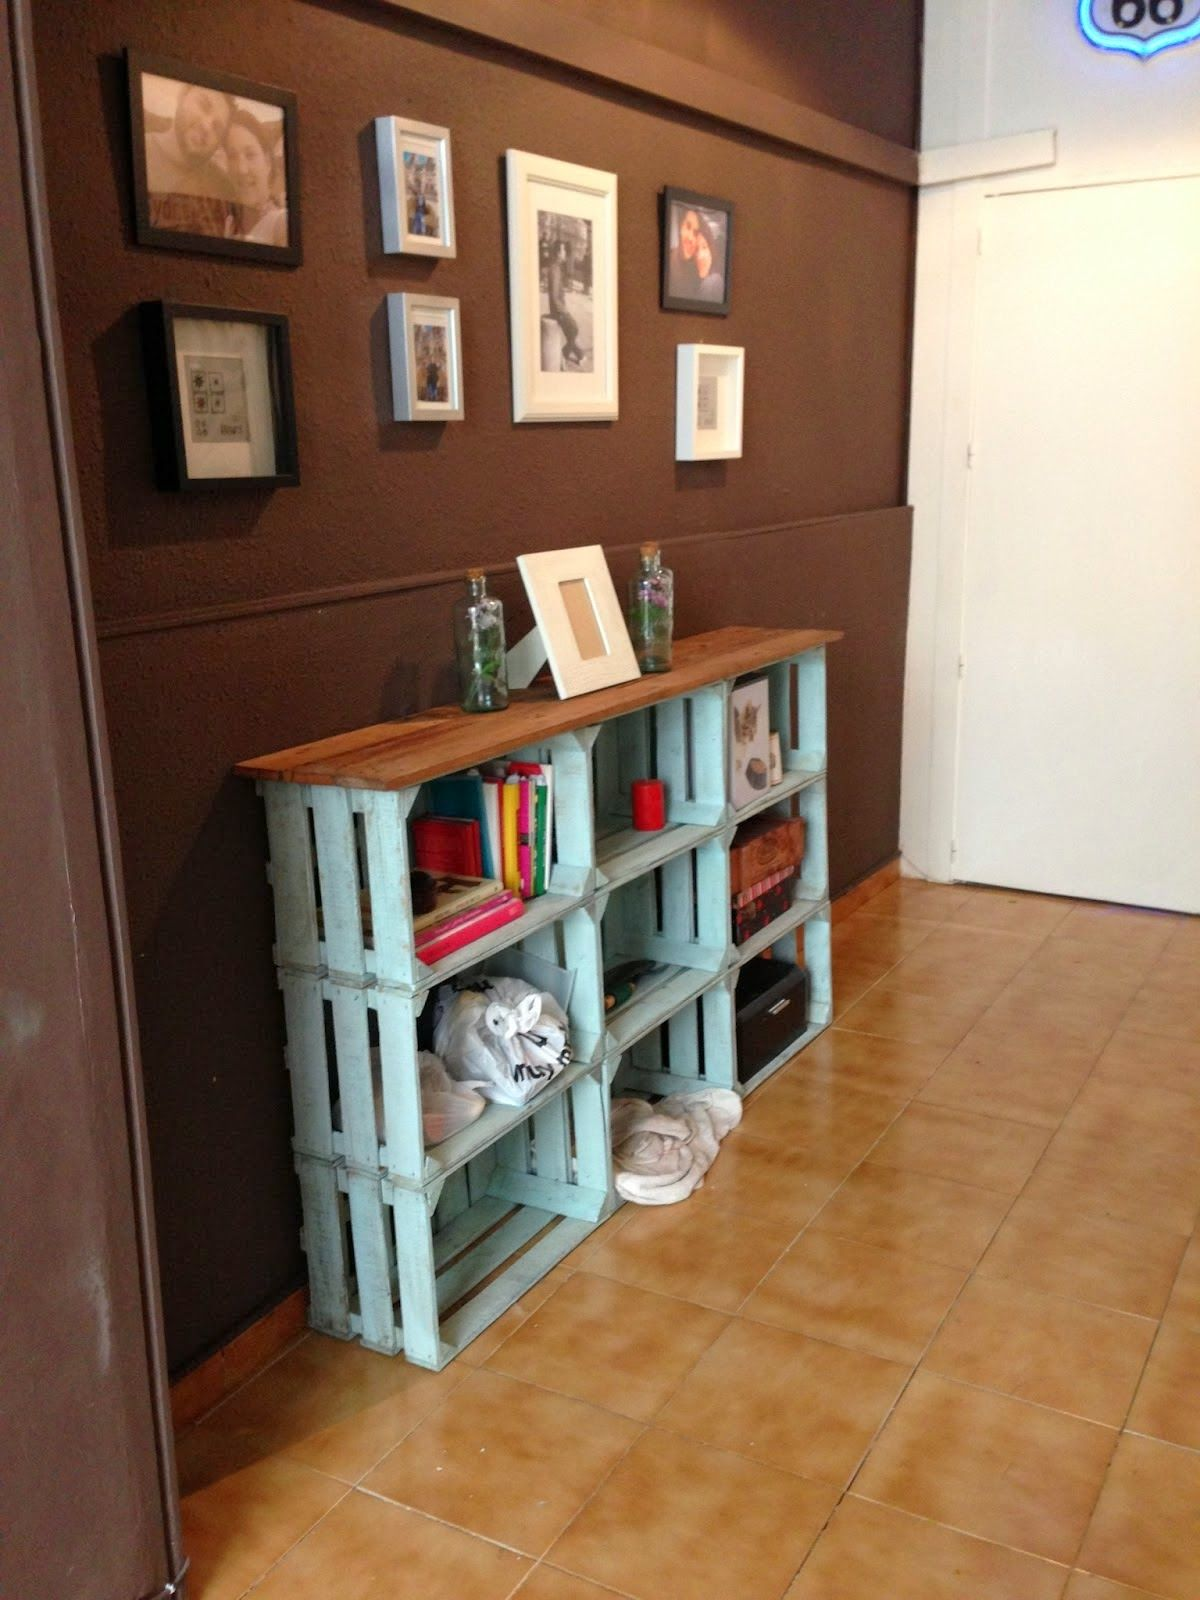 DIY - Paint crates and top off with wood plank. Great for storage! Could